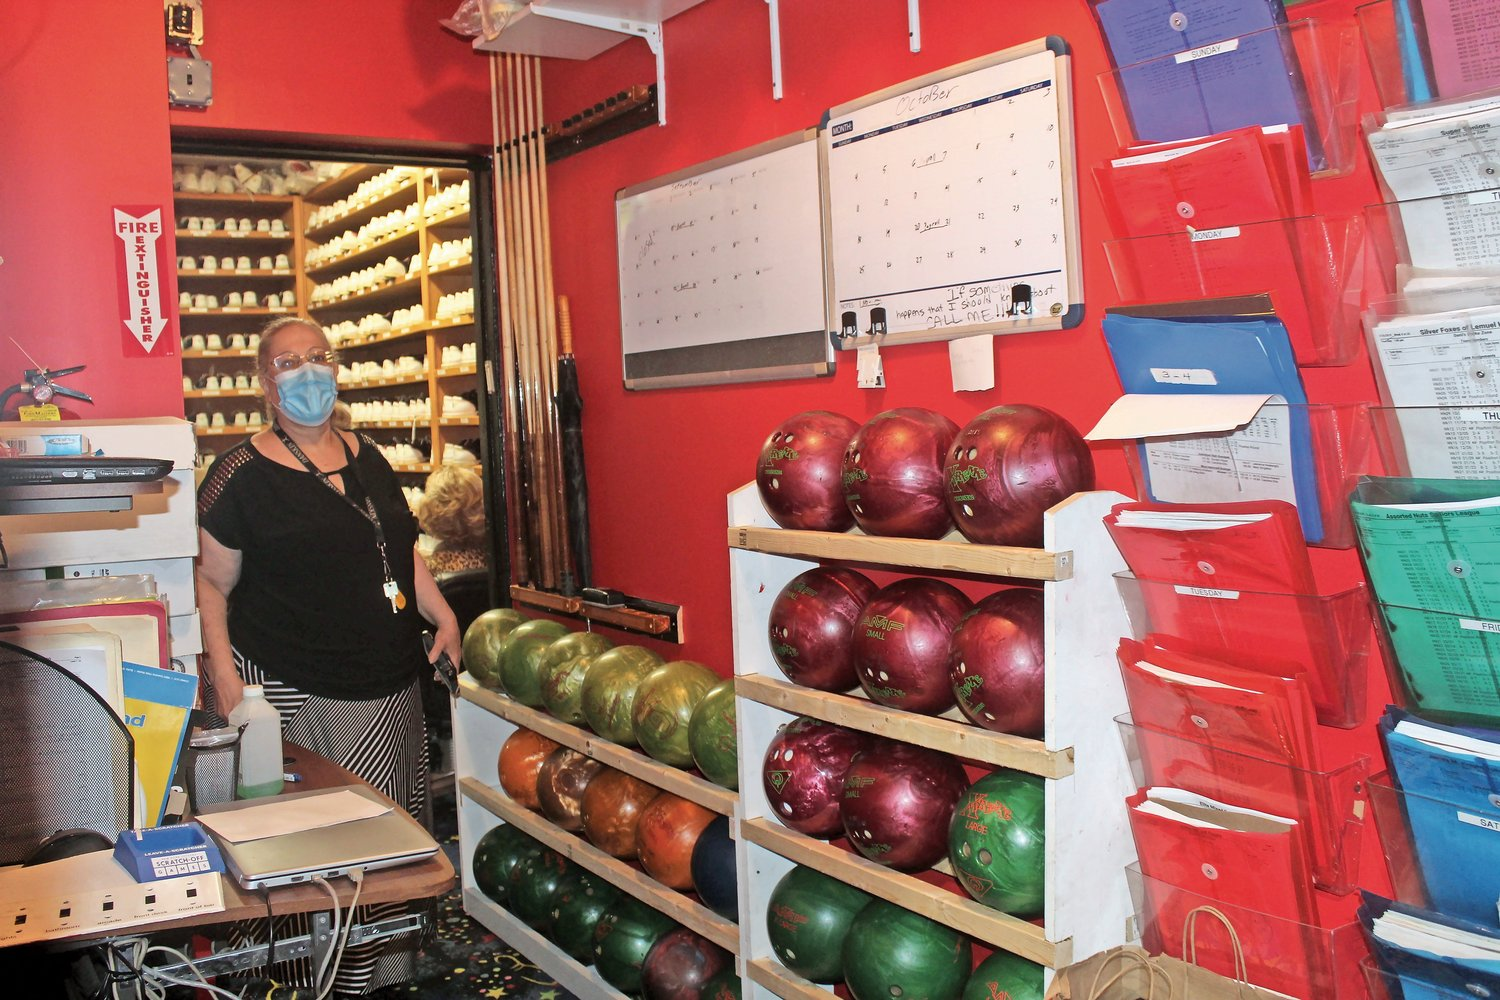 Horowitz keeps all of the bowling balls in a back room.